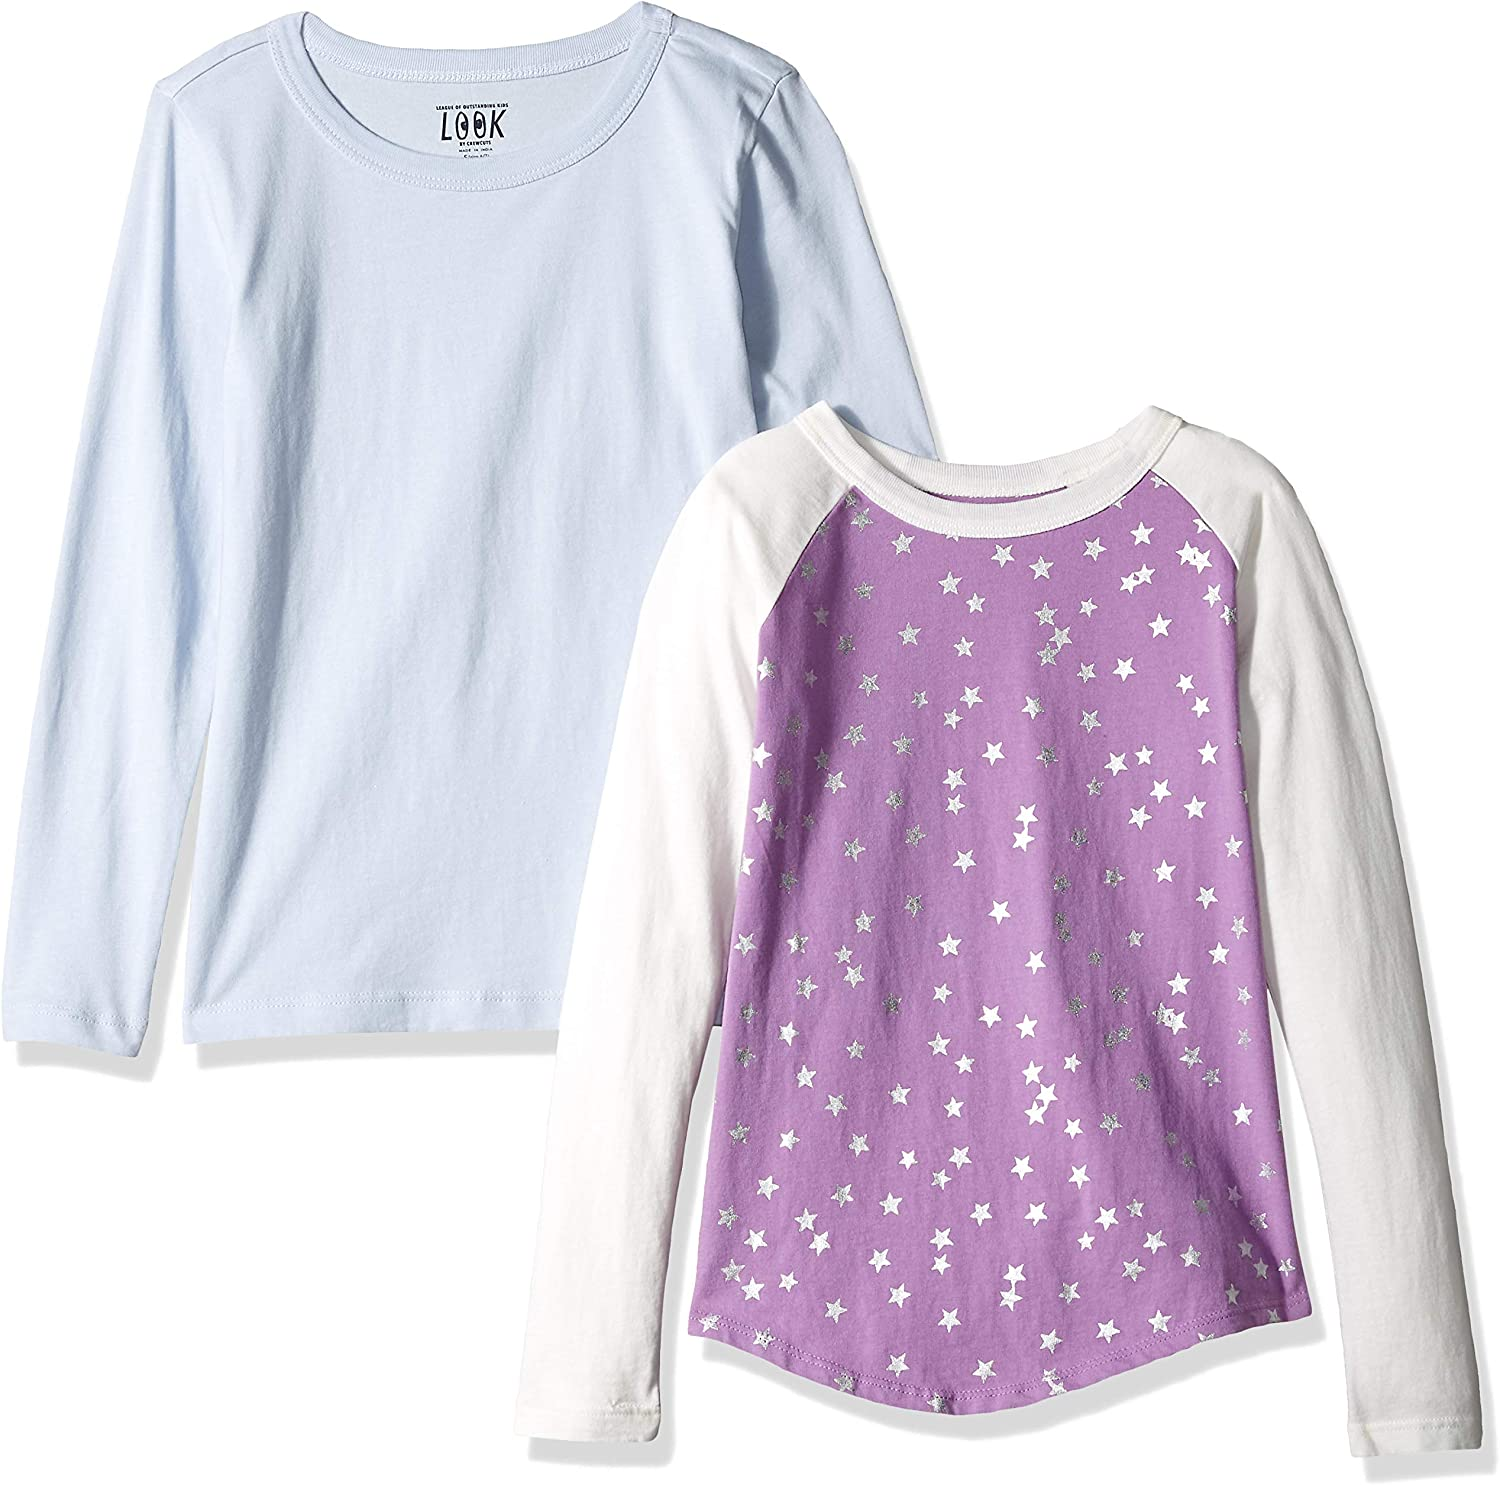 Crew Brand // J LOOK by crewcuts Girls 2-Pack Graphic//Solid Long Sleeve T-Shirt